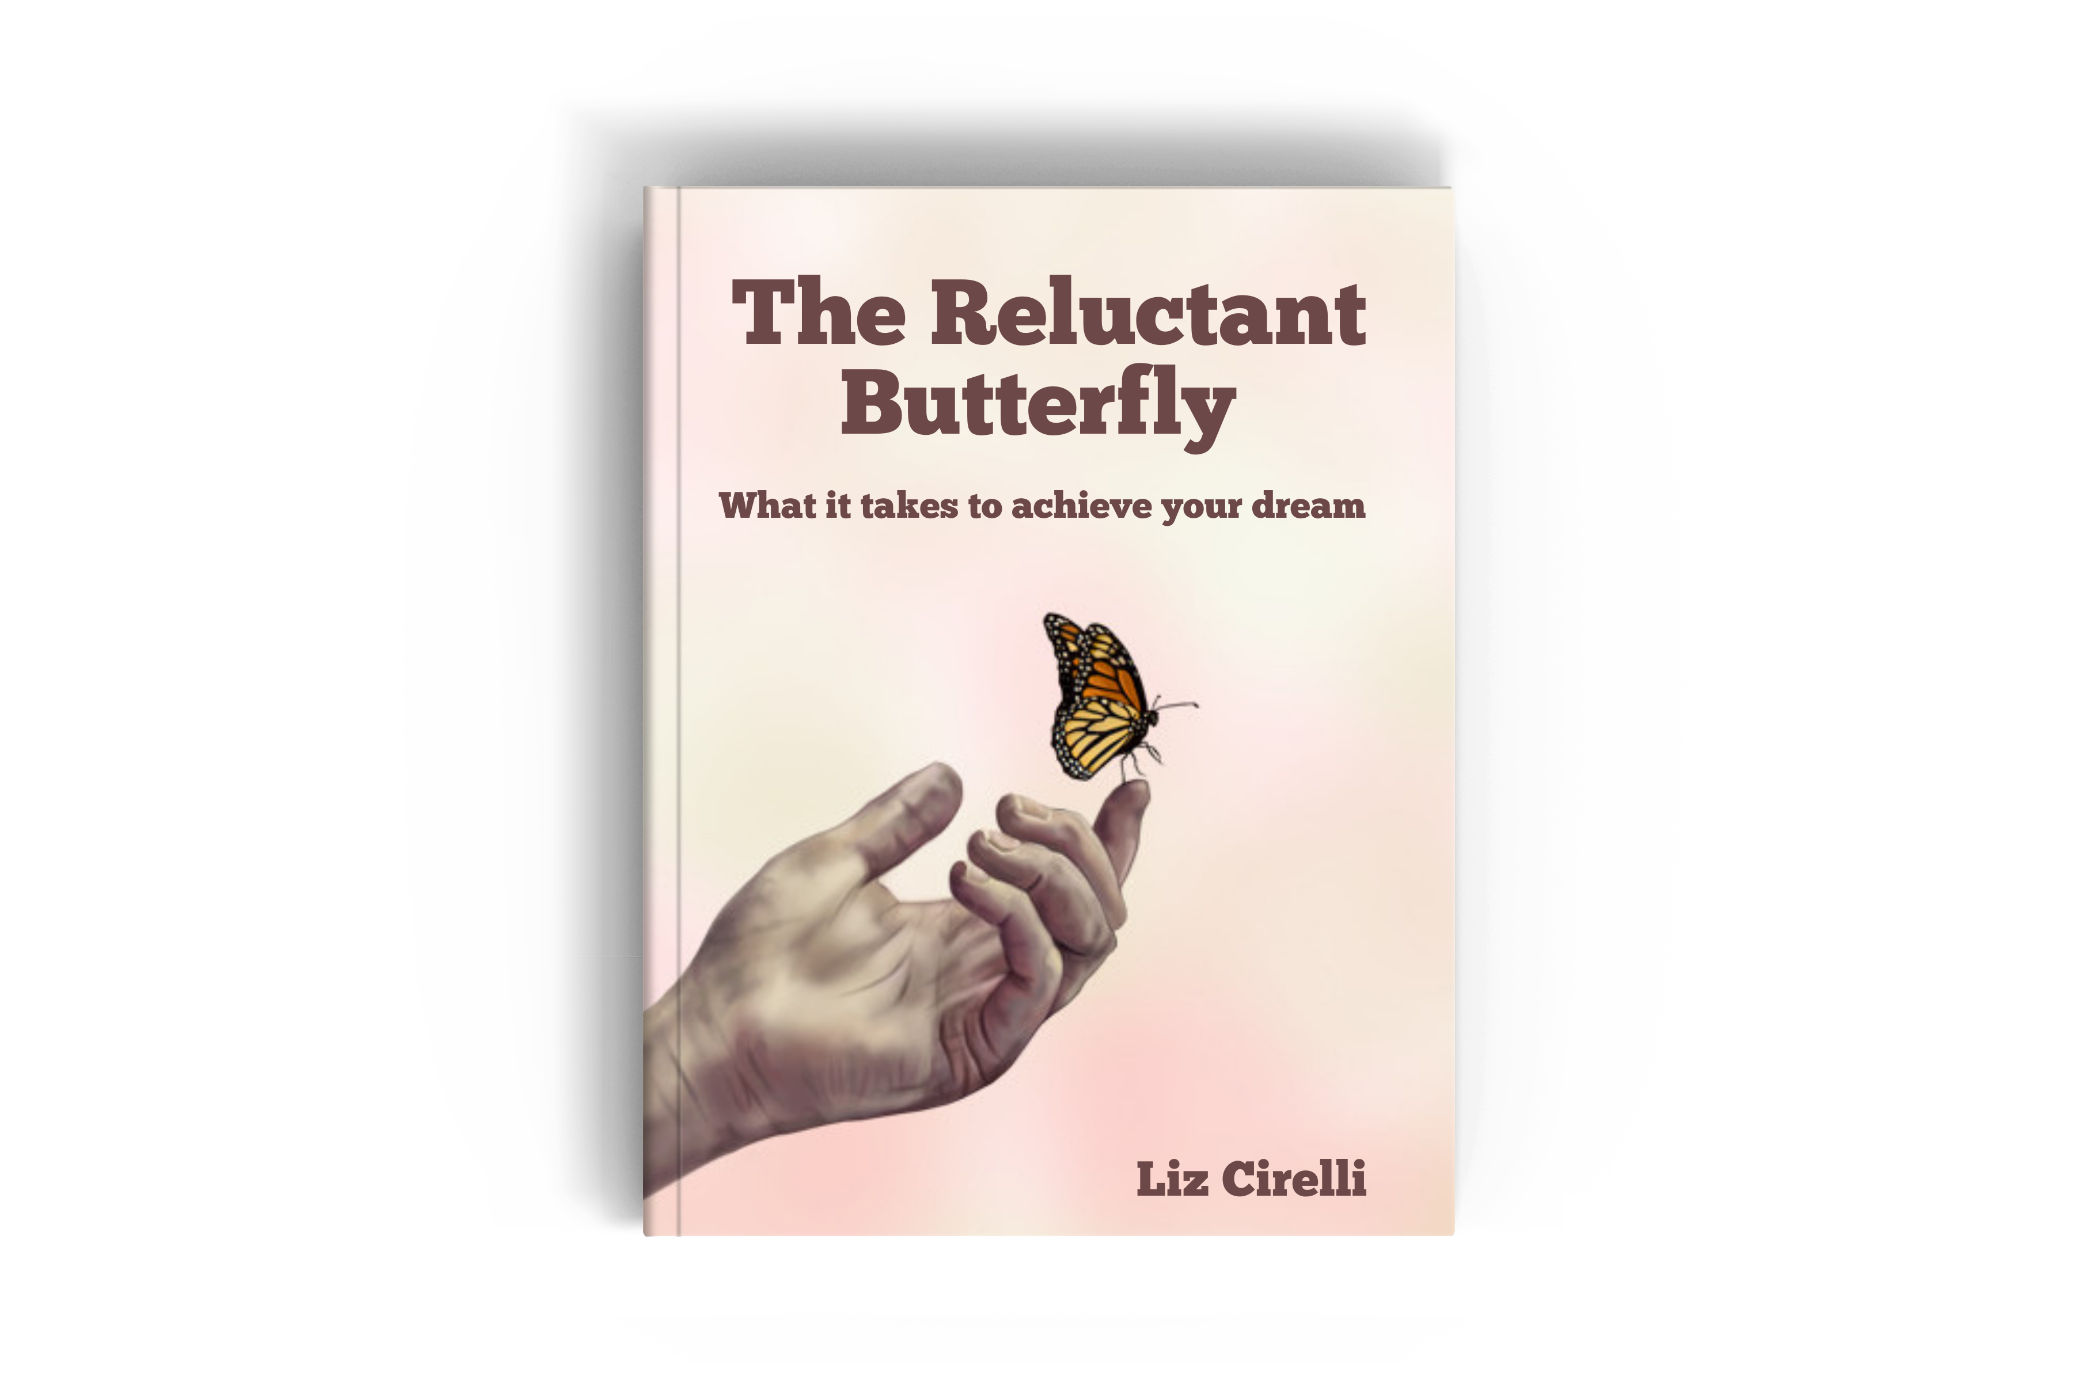 Liz Cirelli - The Reluctant Butterfly (e-book)